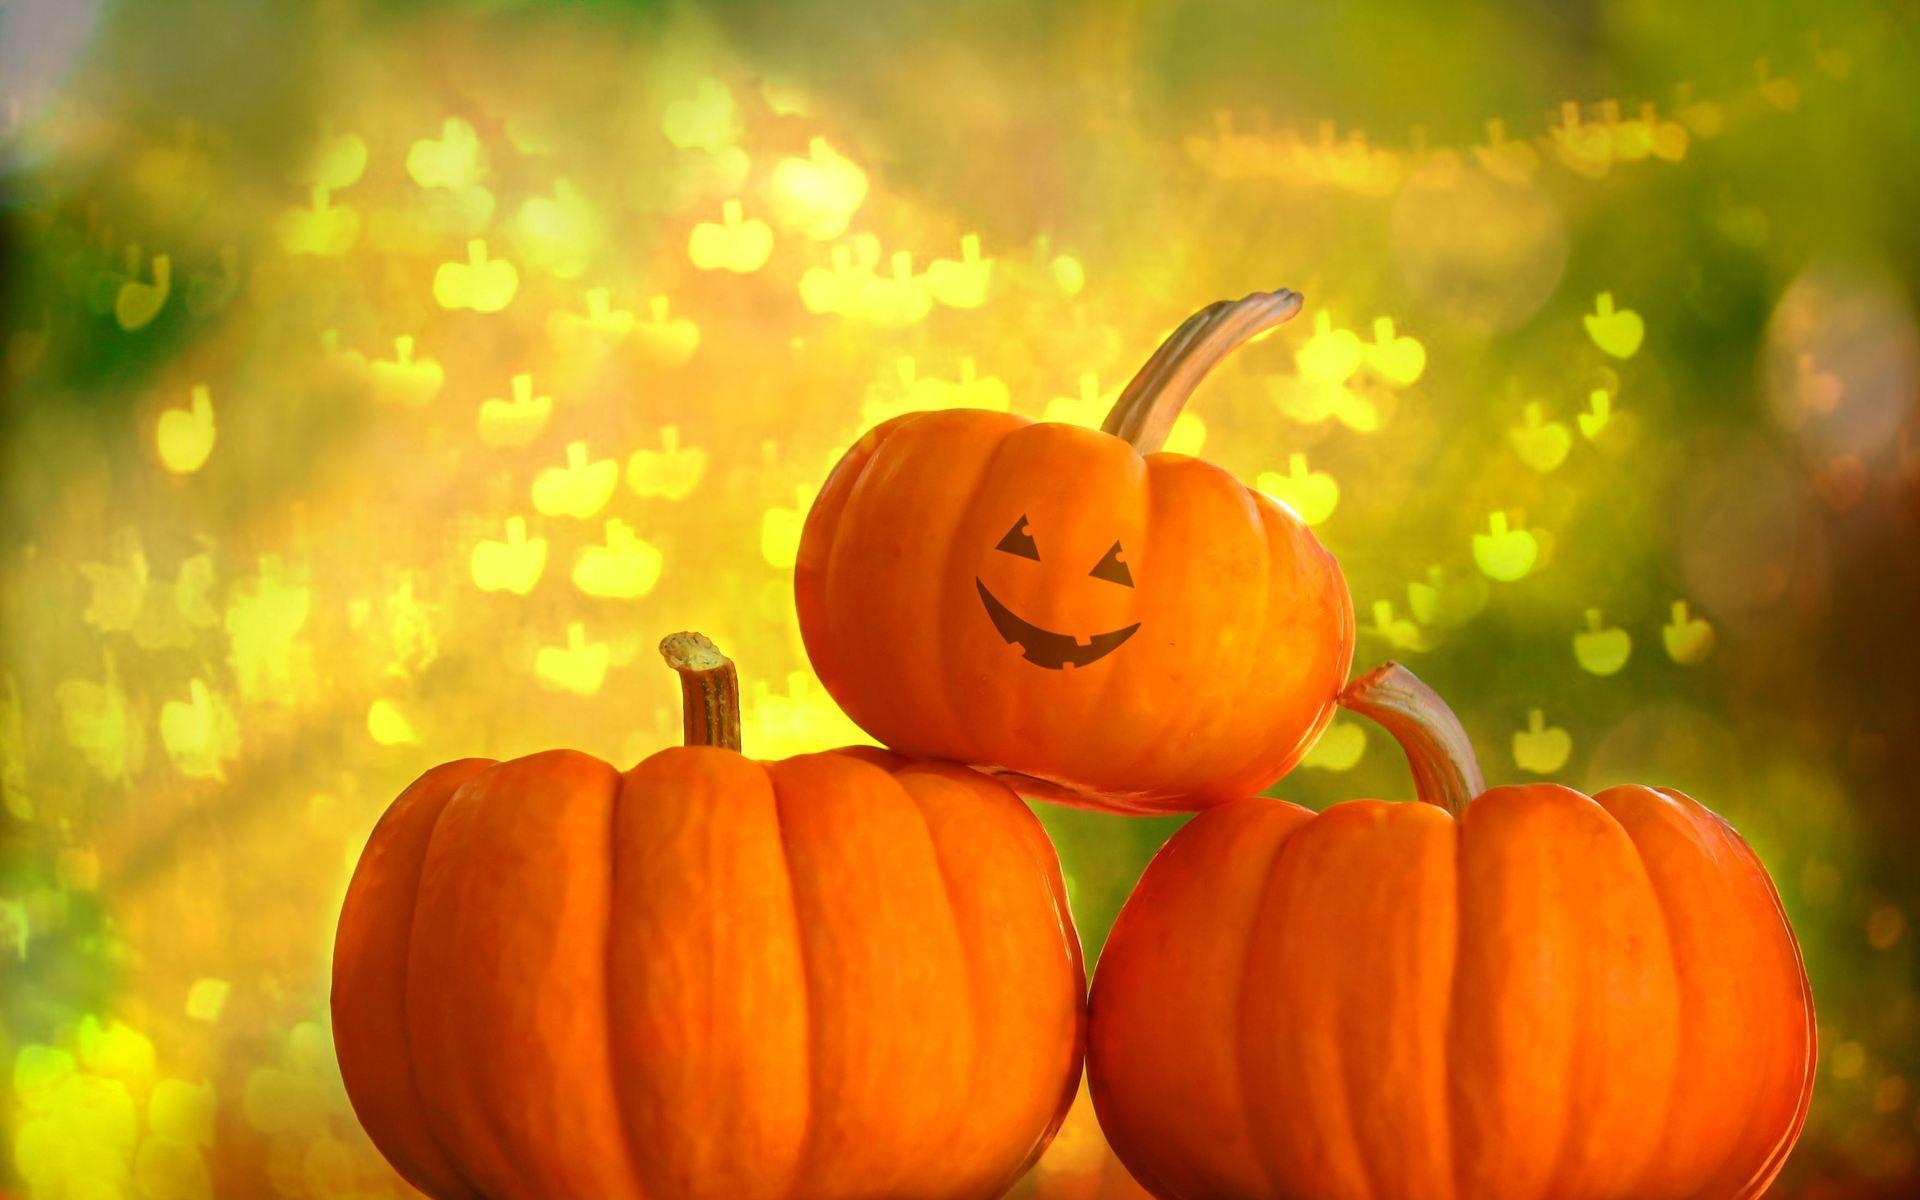 Halloween Pumpkin Wallpaper Hd.Hd Pumpkin Wallpapers Wallpaper Cave